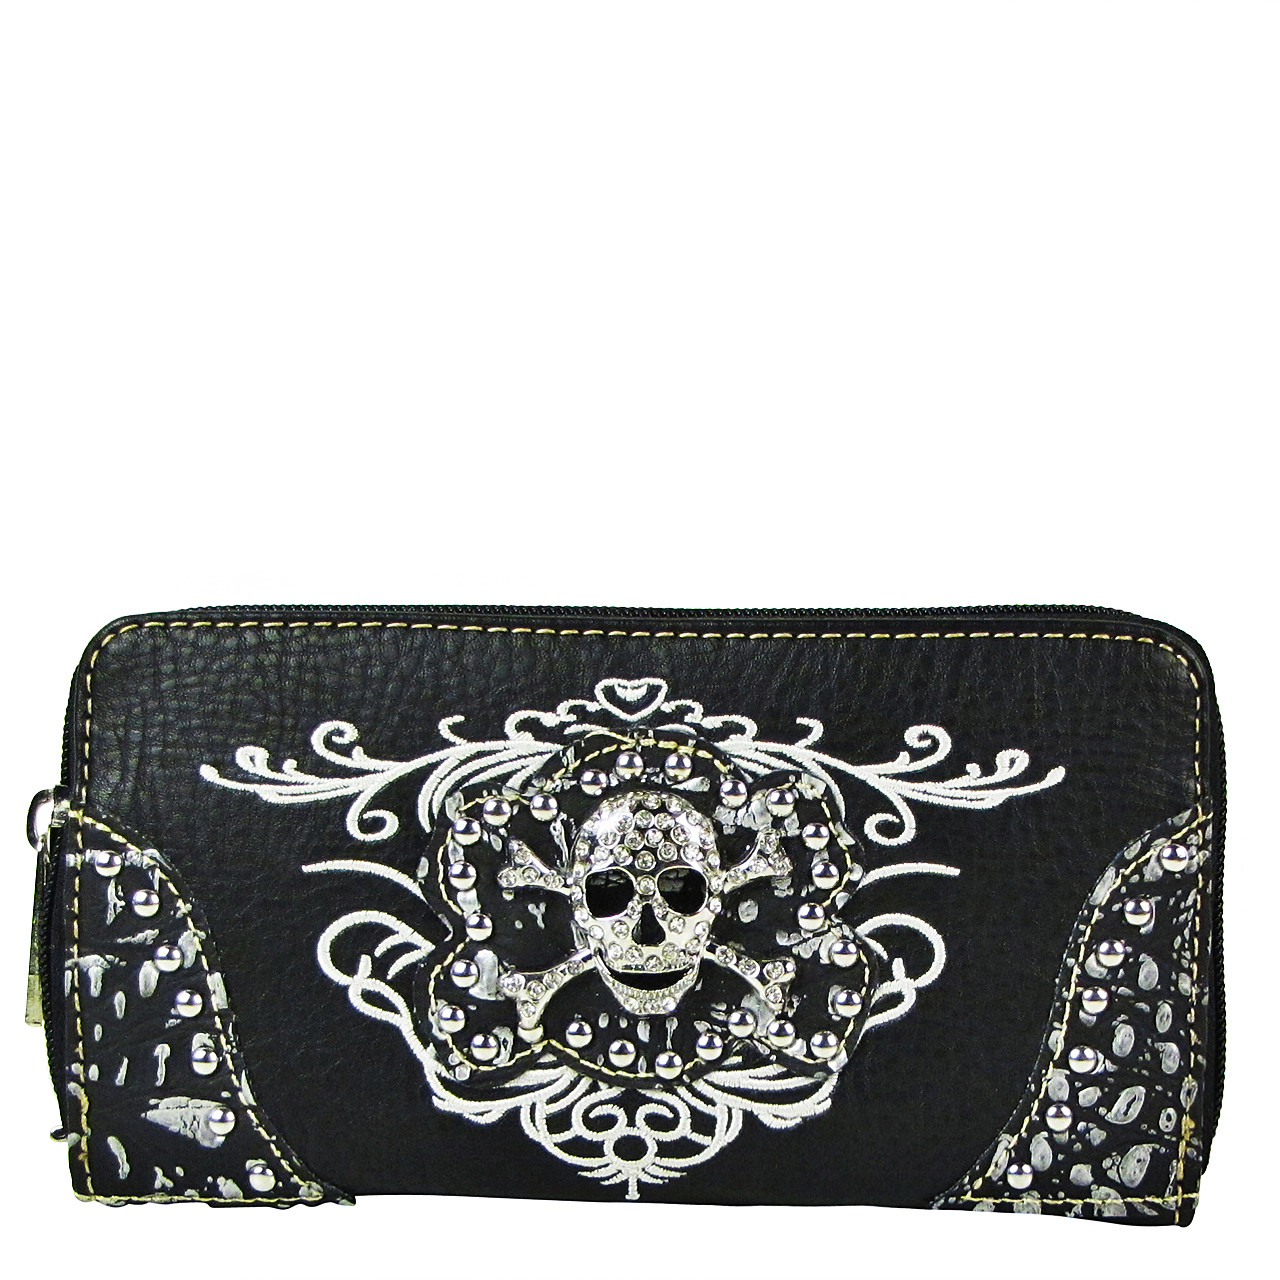 BLACK RHINESTONE SKULL LOOK ZIPPER WALLET CB3-1209BLK